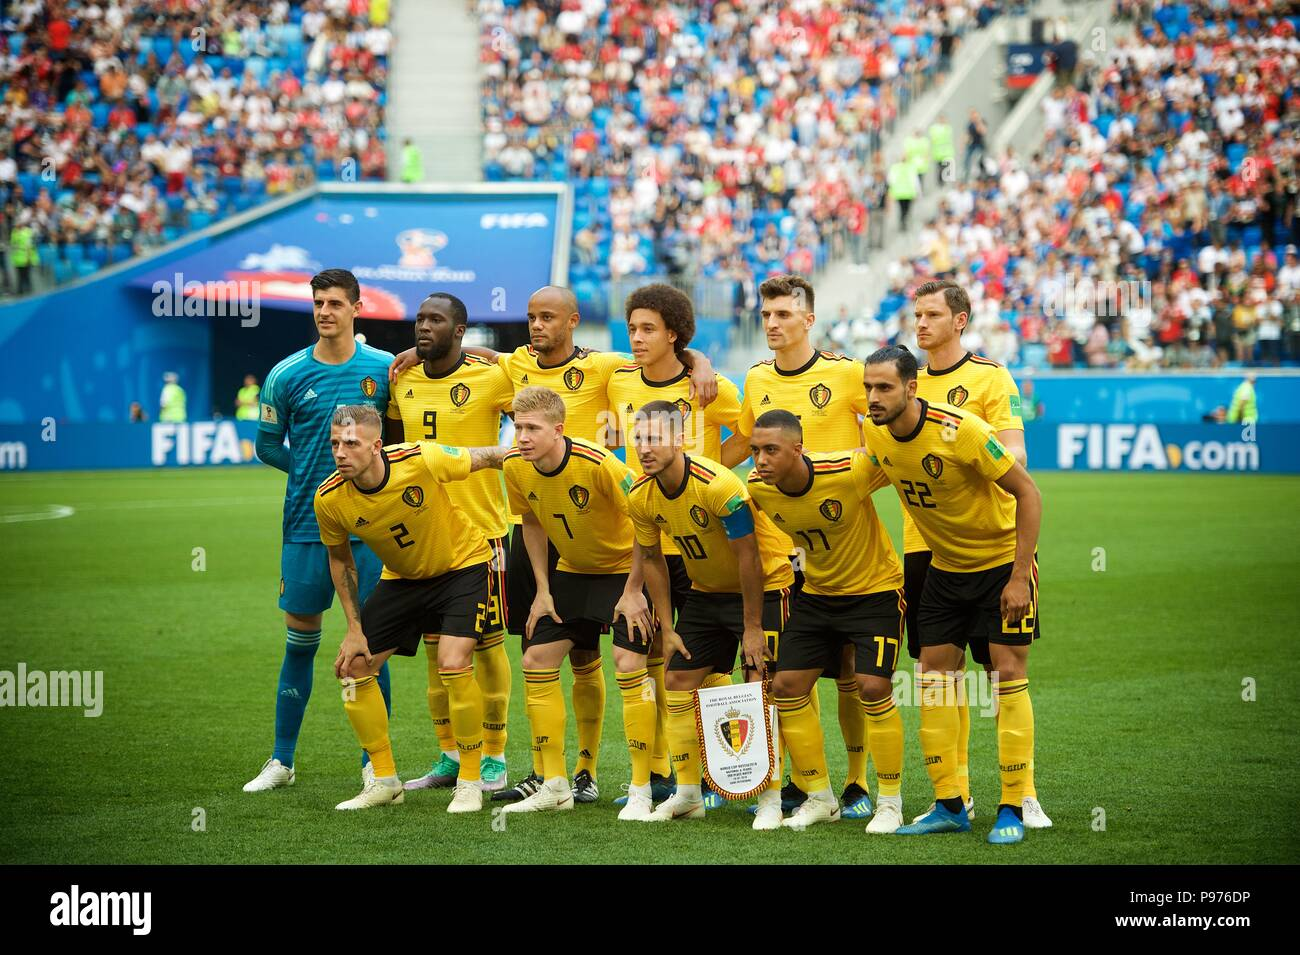 July 14th, 2018, St Petersburg, Russia. Belgium football team pose for team photo at 2018 FIFA World Cup Russia match between England and Belgium at Saint-Petersburg Stadium, Russia. Shoja Lak/Alamy Live News - Stock Image